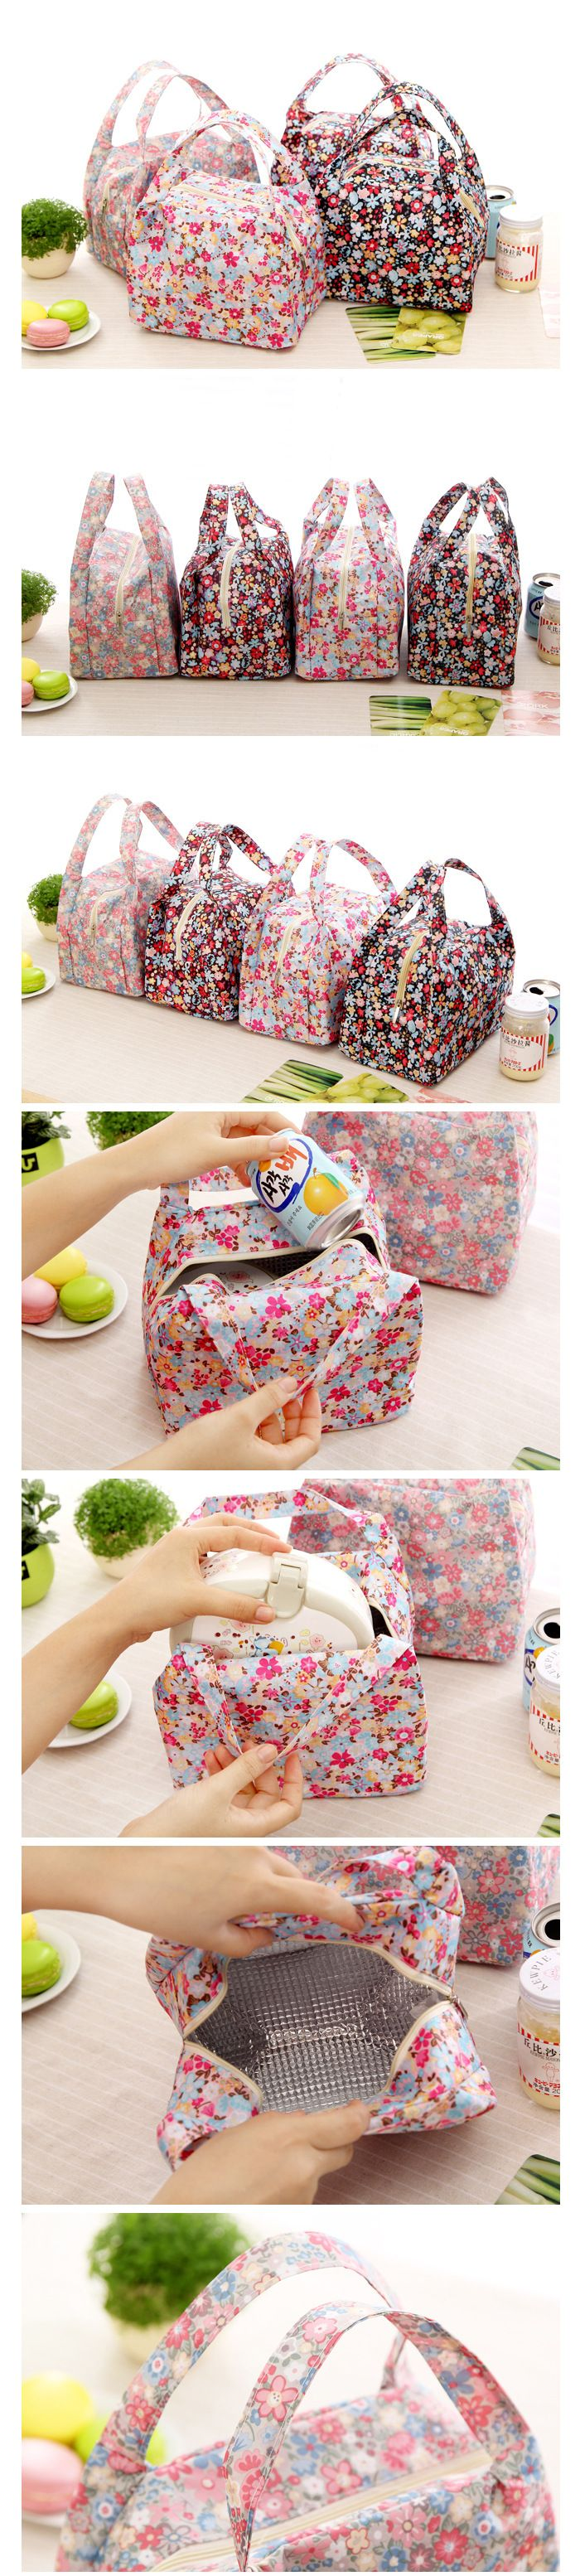 Oxford Waterproof Lunch Tote Bag Picnic Cooler Insulated Summer Beach Storage Containers Cheap - NewChic Mobile.